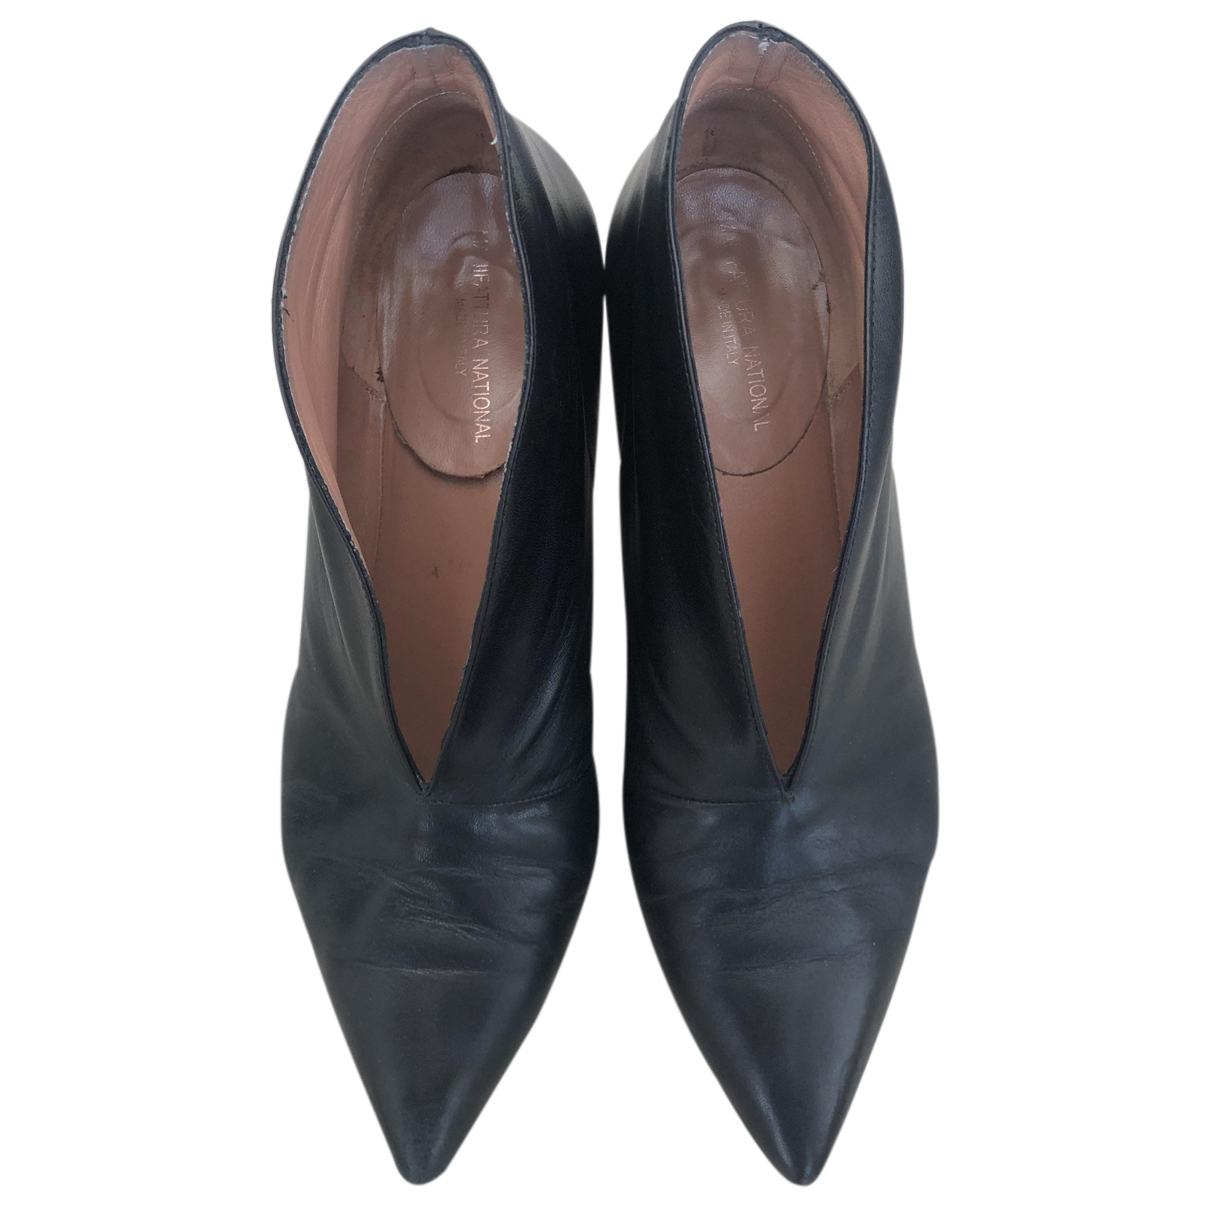 Non Signé / Unsigned N Black Leather Heels for Women 41 IT